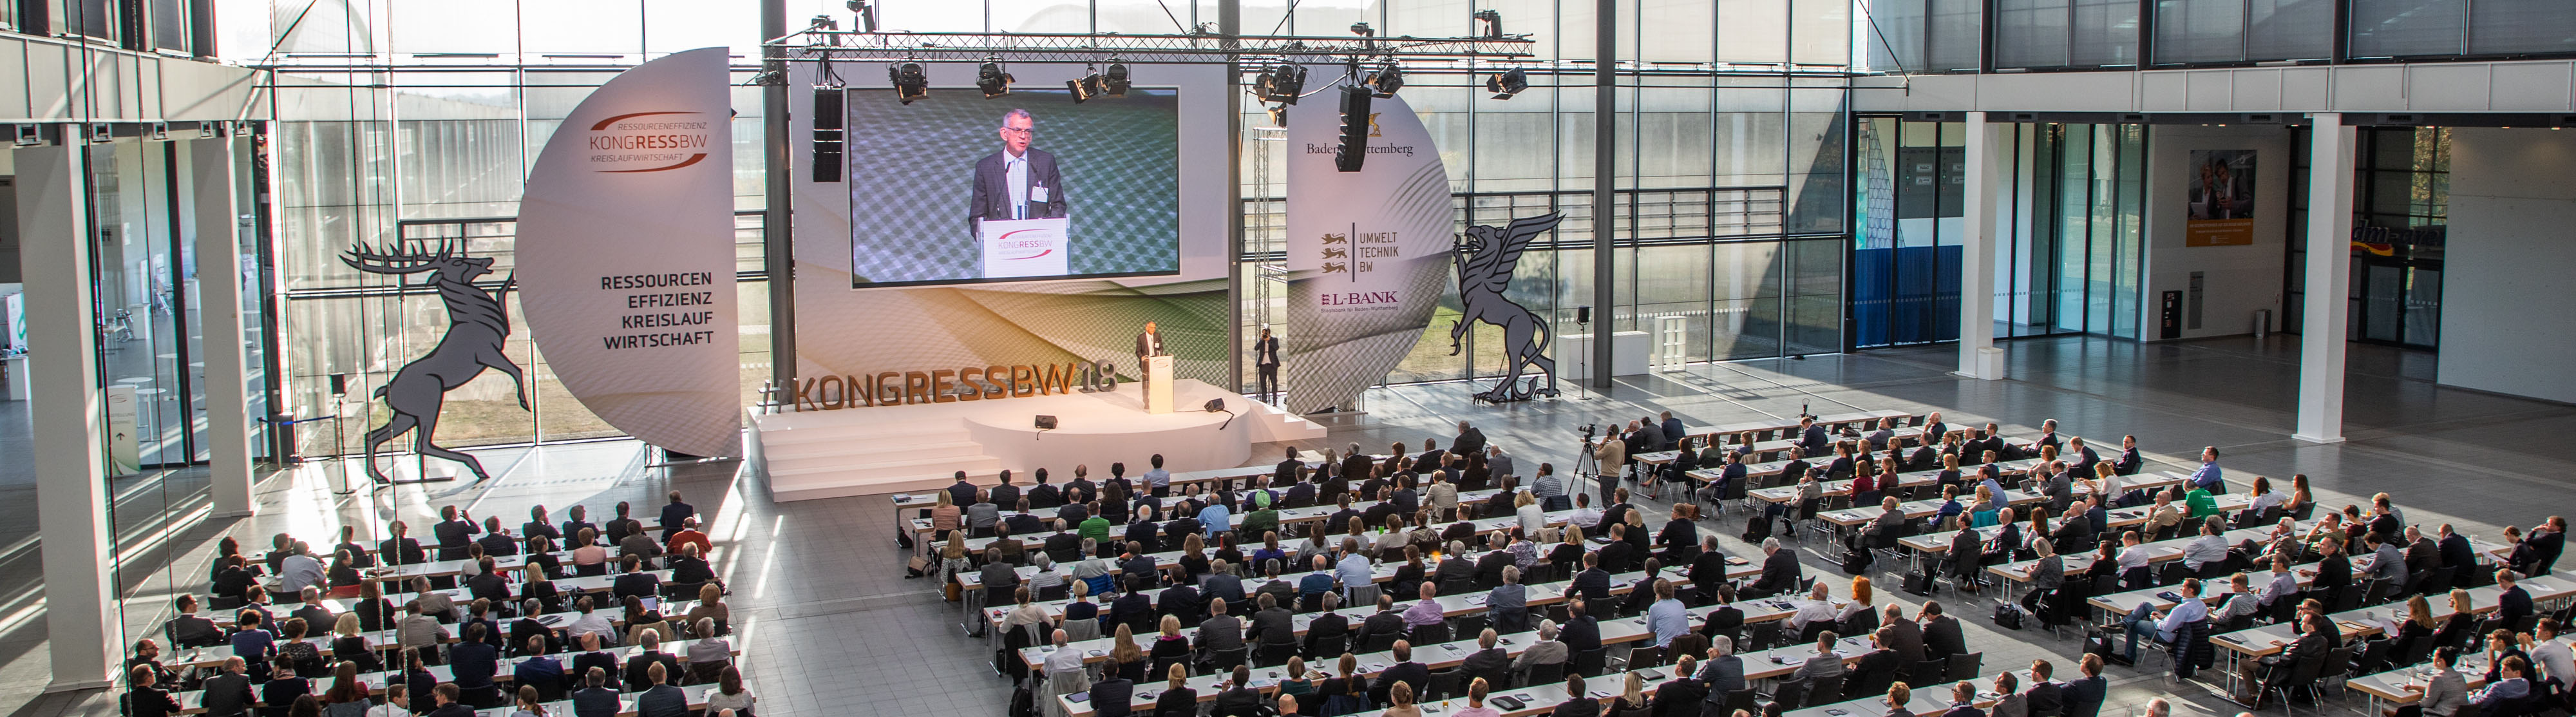 KONGRESS BW 2018 Plenum Helmfried Meinel